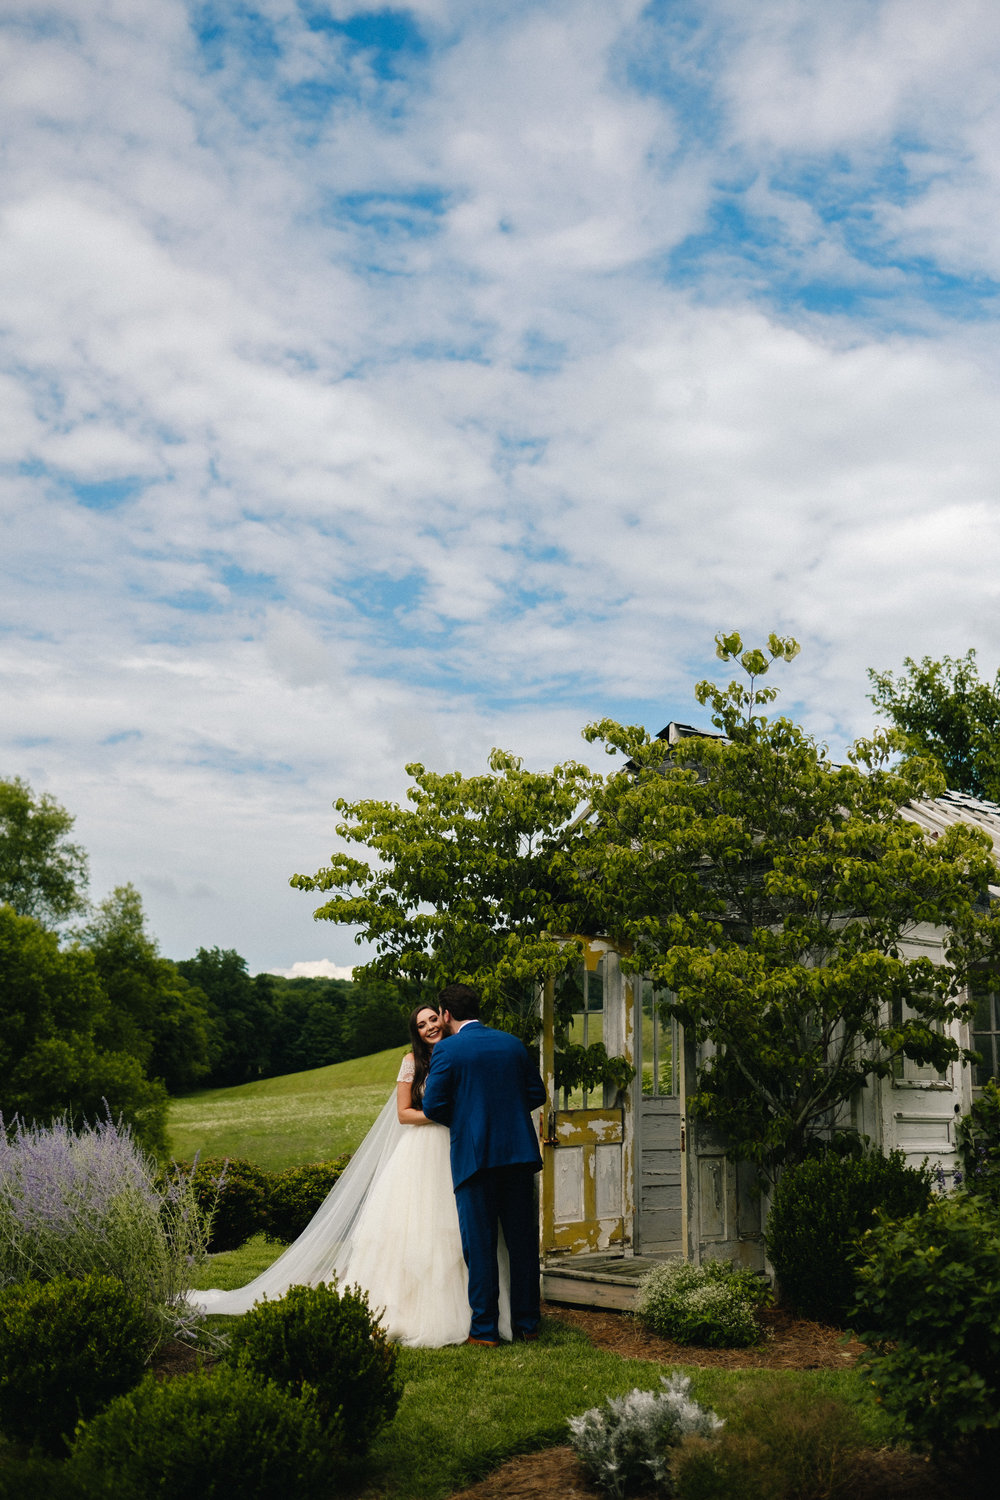 Nashville_Wedding_Photography_Mint_Springs_32.jpg